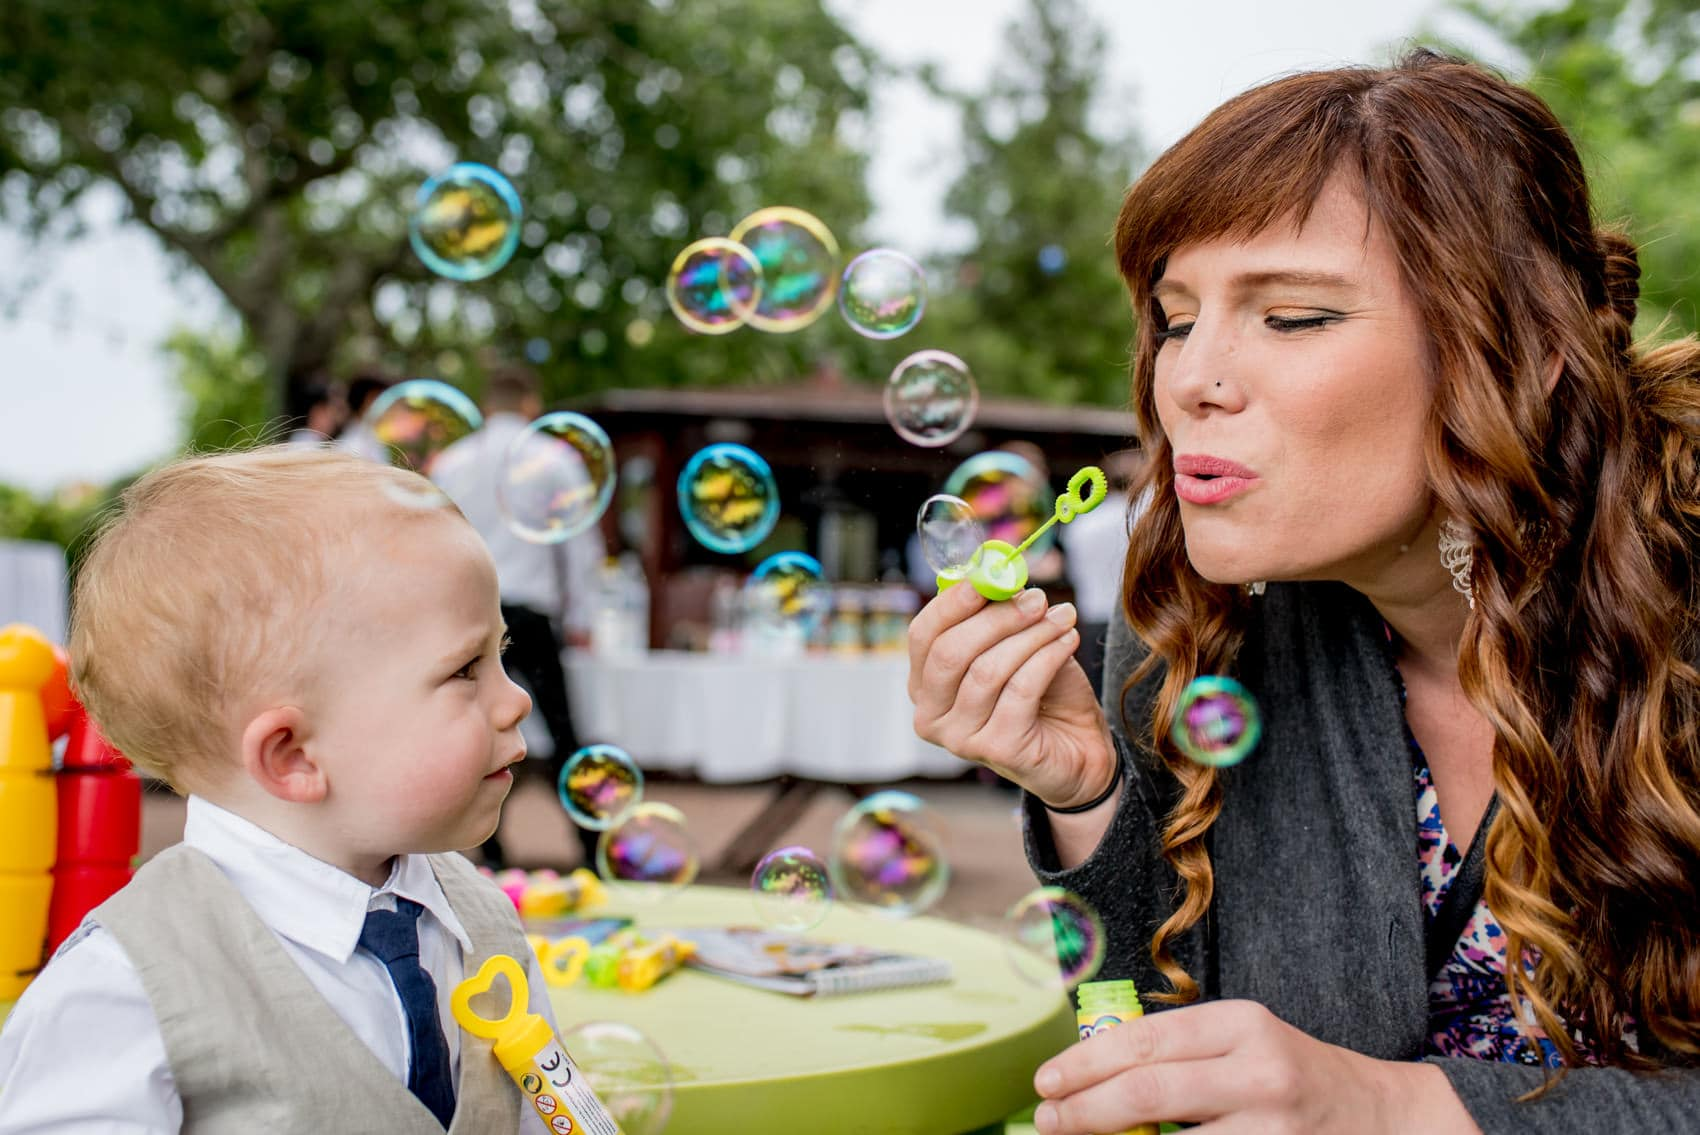 girls plays with bubbles with a young boy